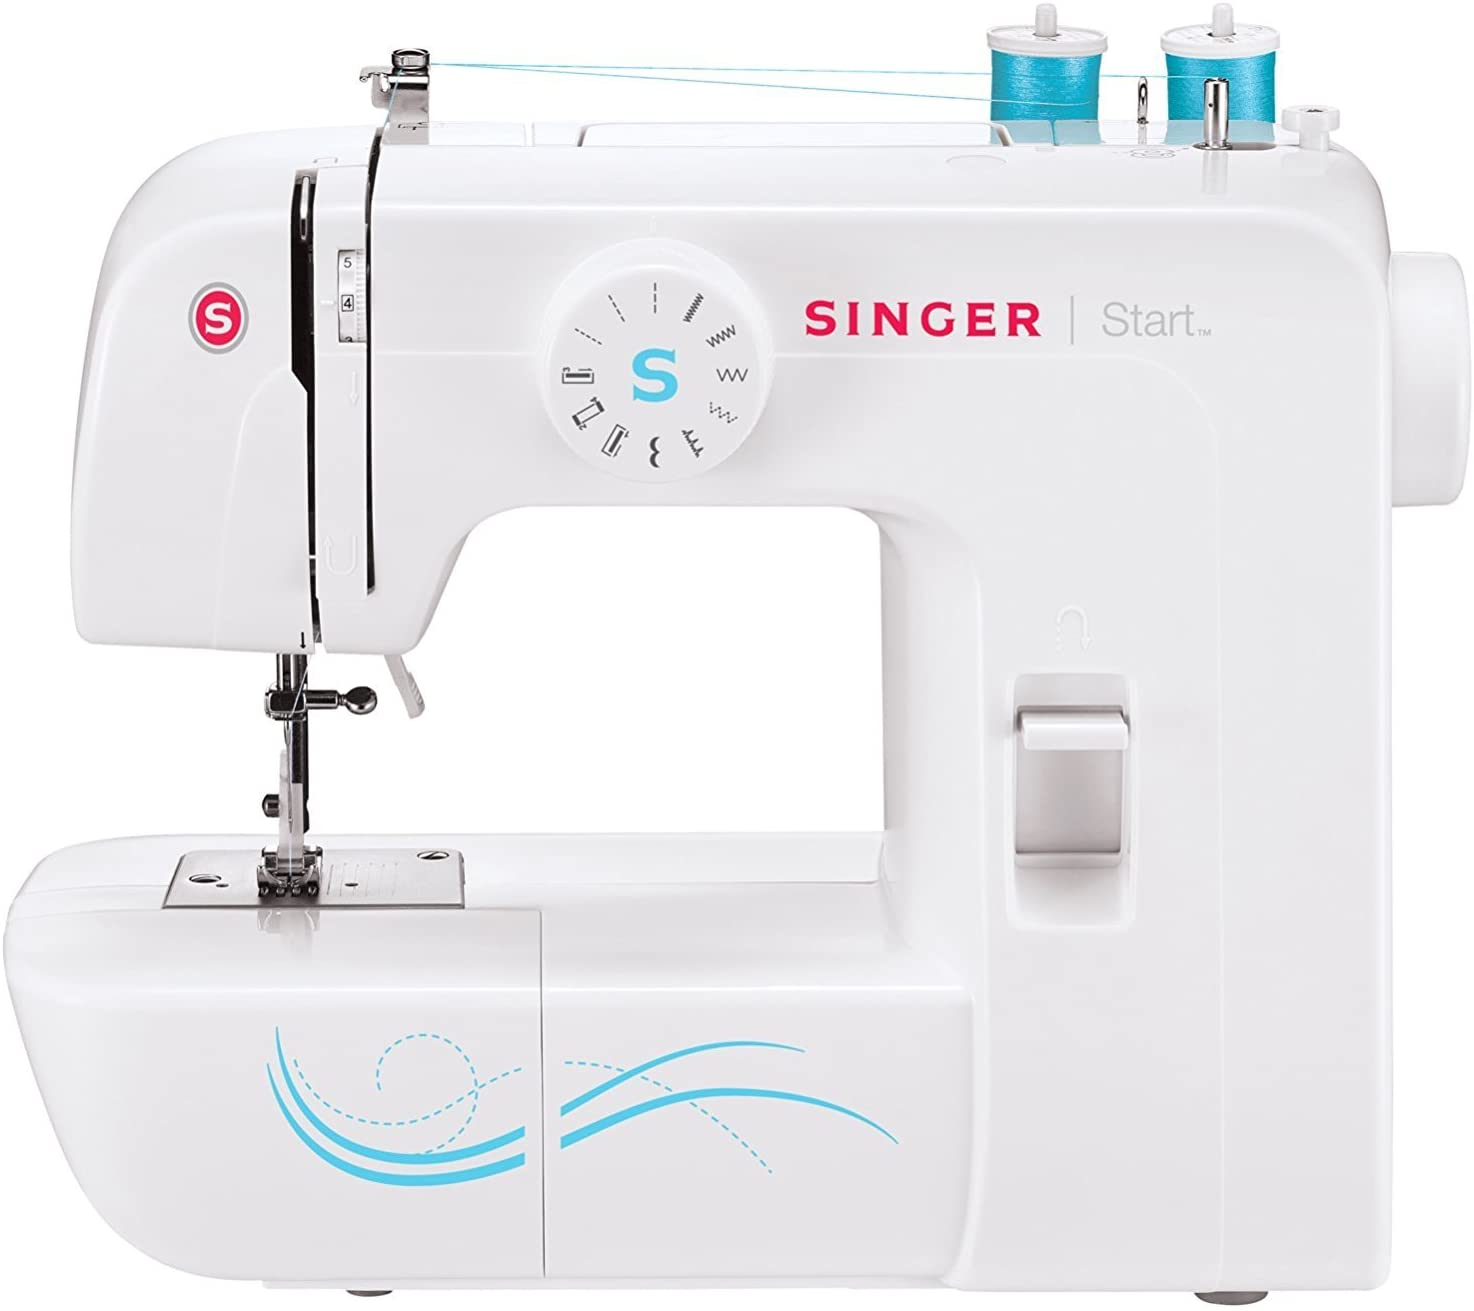 Best for Beginners: Singer Mechanical Sewing Machine - Start 1304 with 6 Built-in Stitches